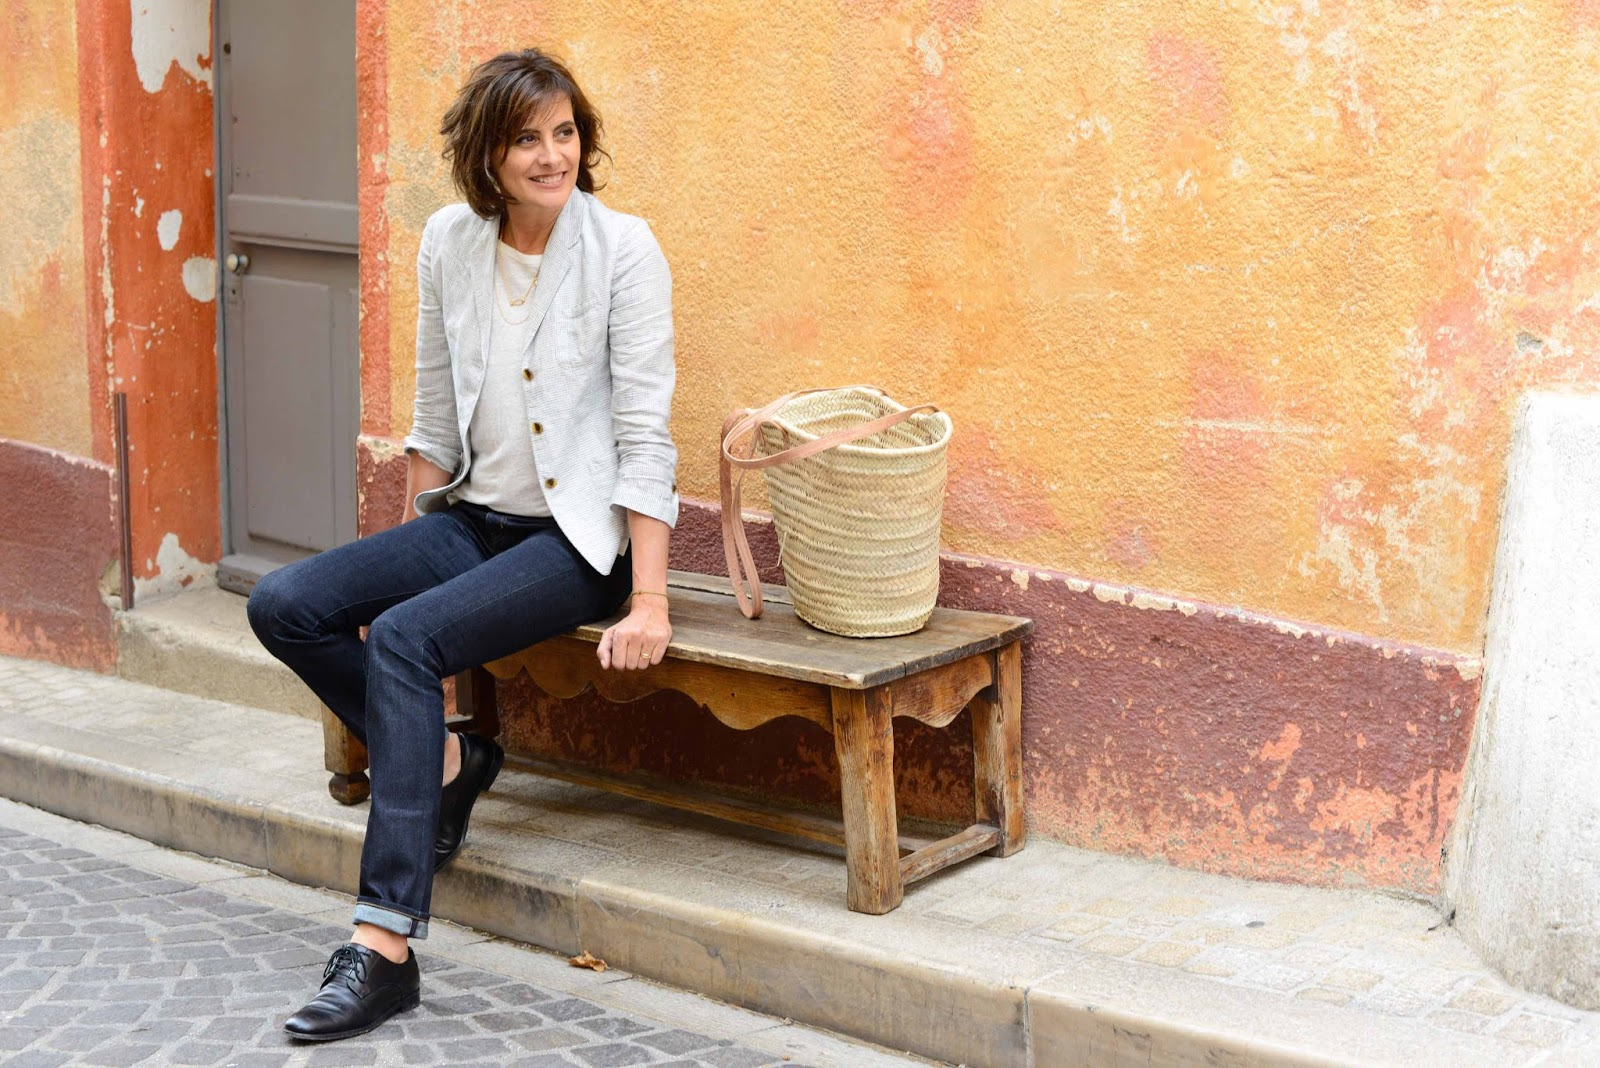 Eniwhere Fashion - Ines de la Fressange - Paris